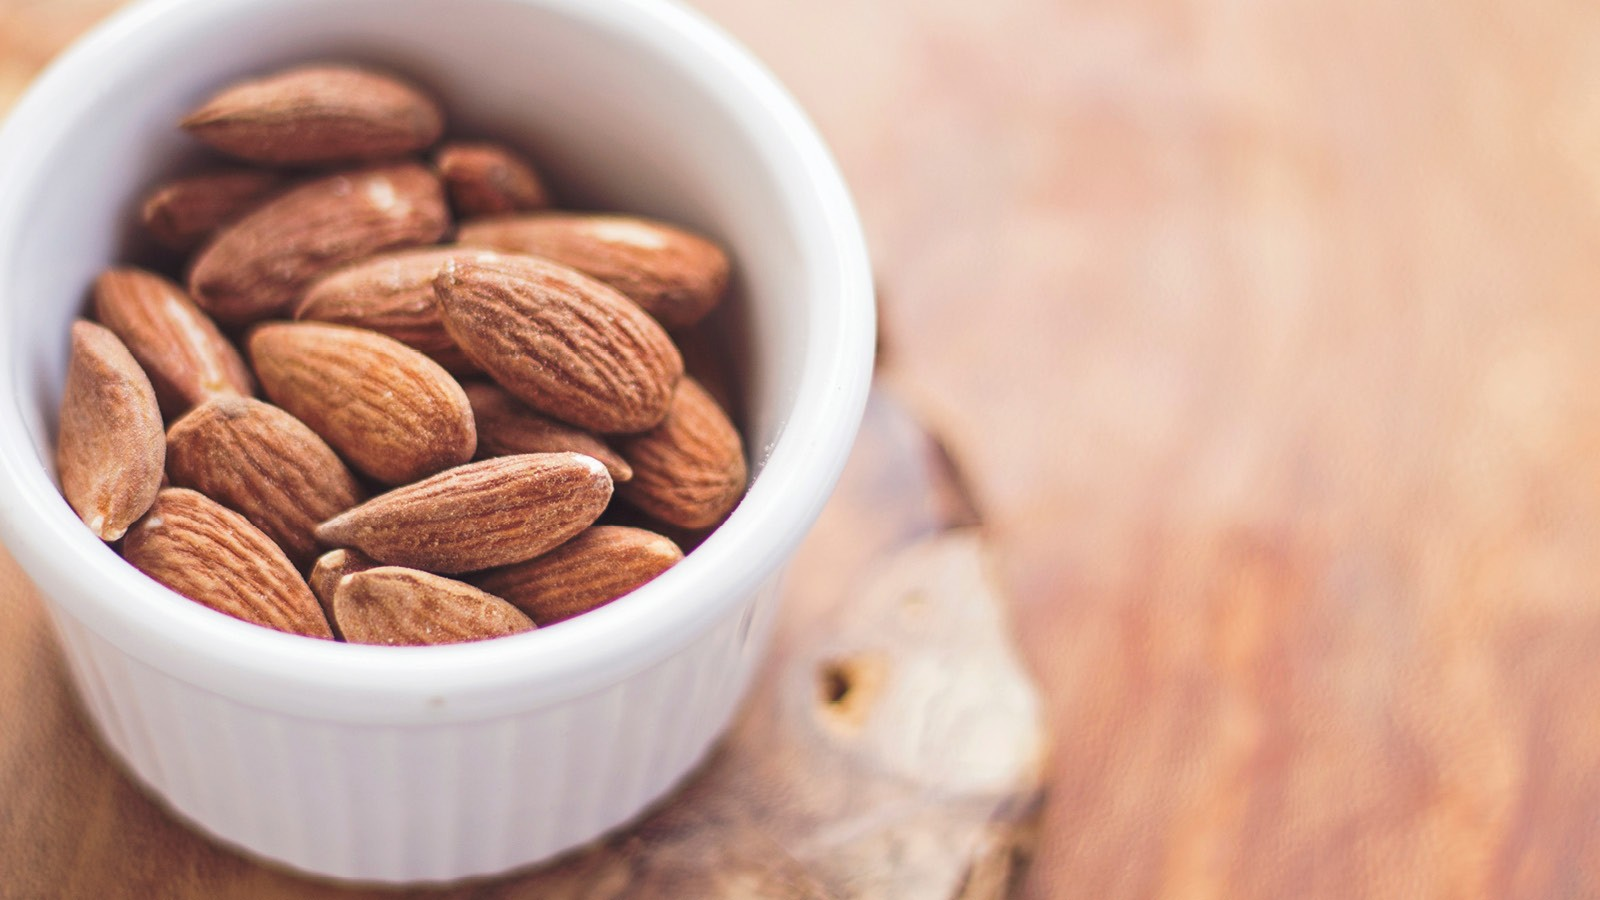 Nuts such as almonds are a good source of energy